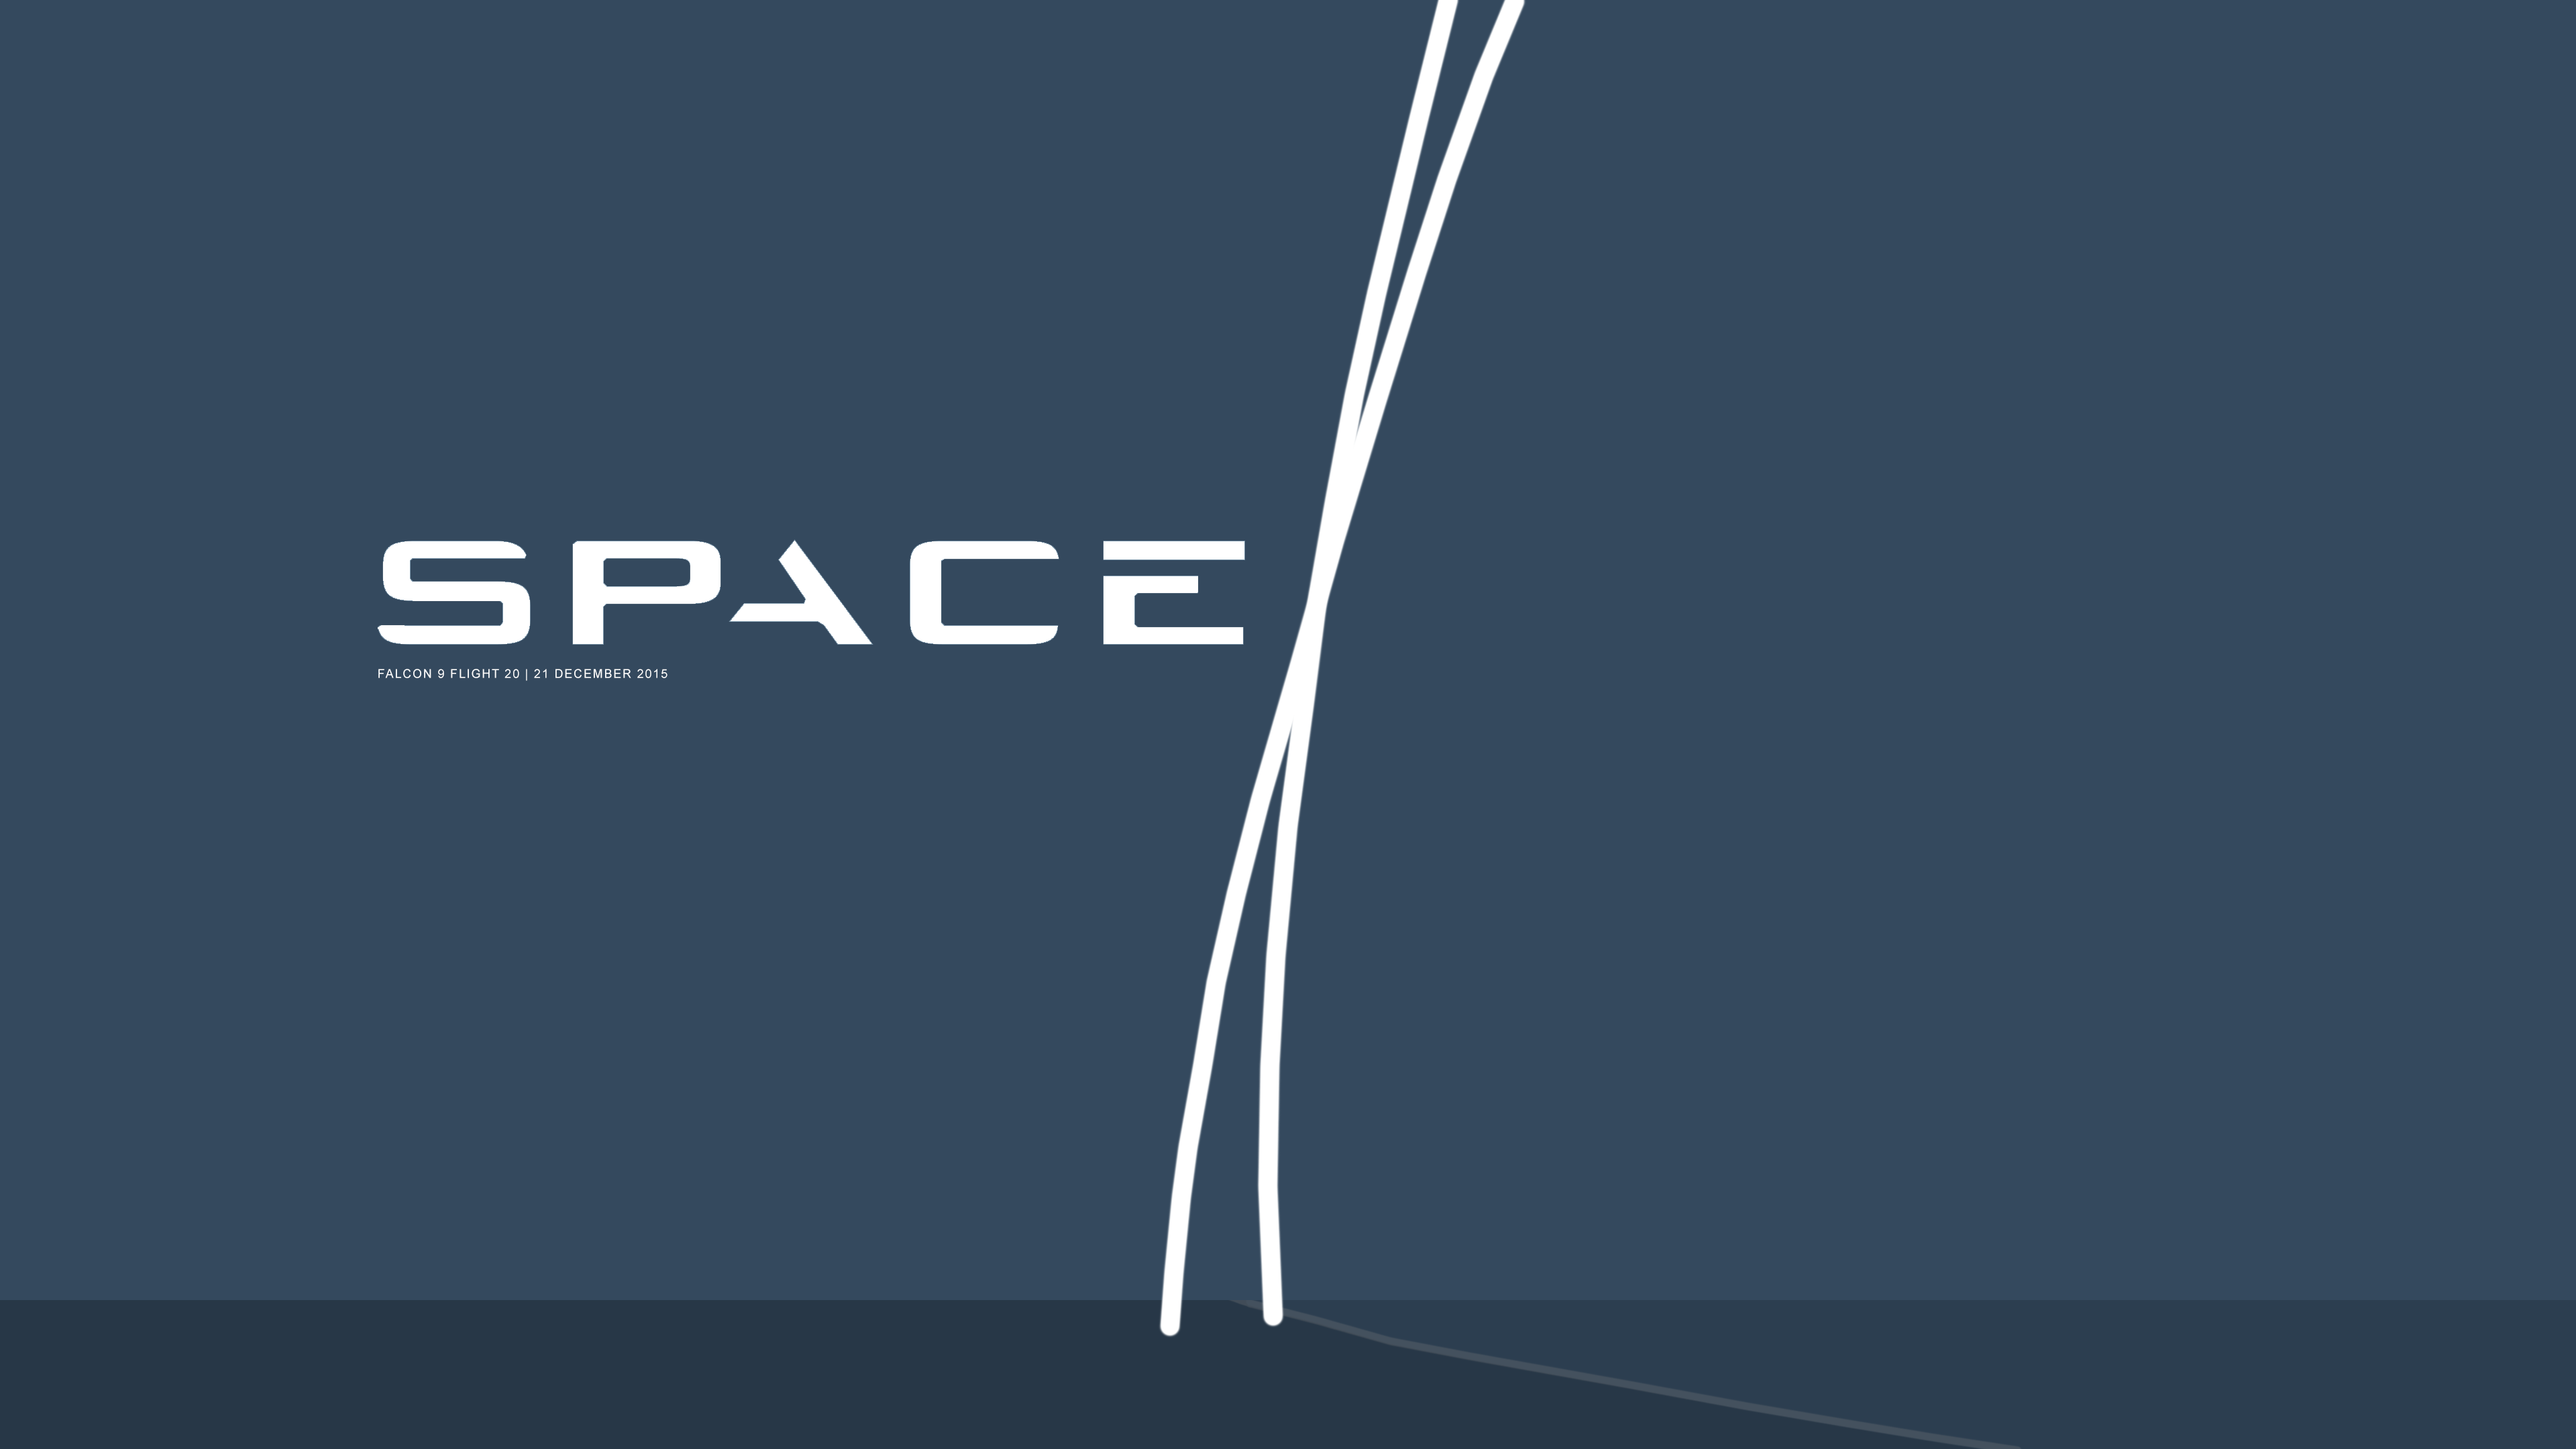 Spacex Flat Wallpaper 3840 X 2160 R Wallpapers Spacex Wallpaper Cool Iphone 6 Cases